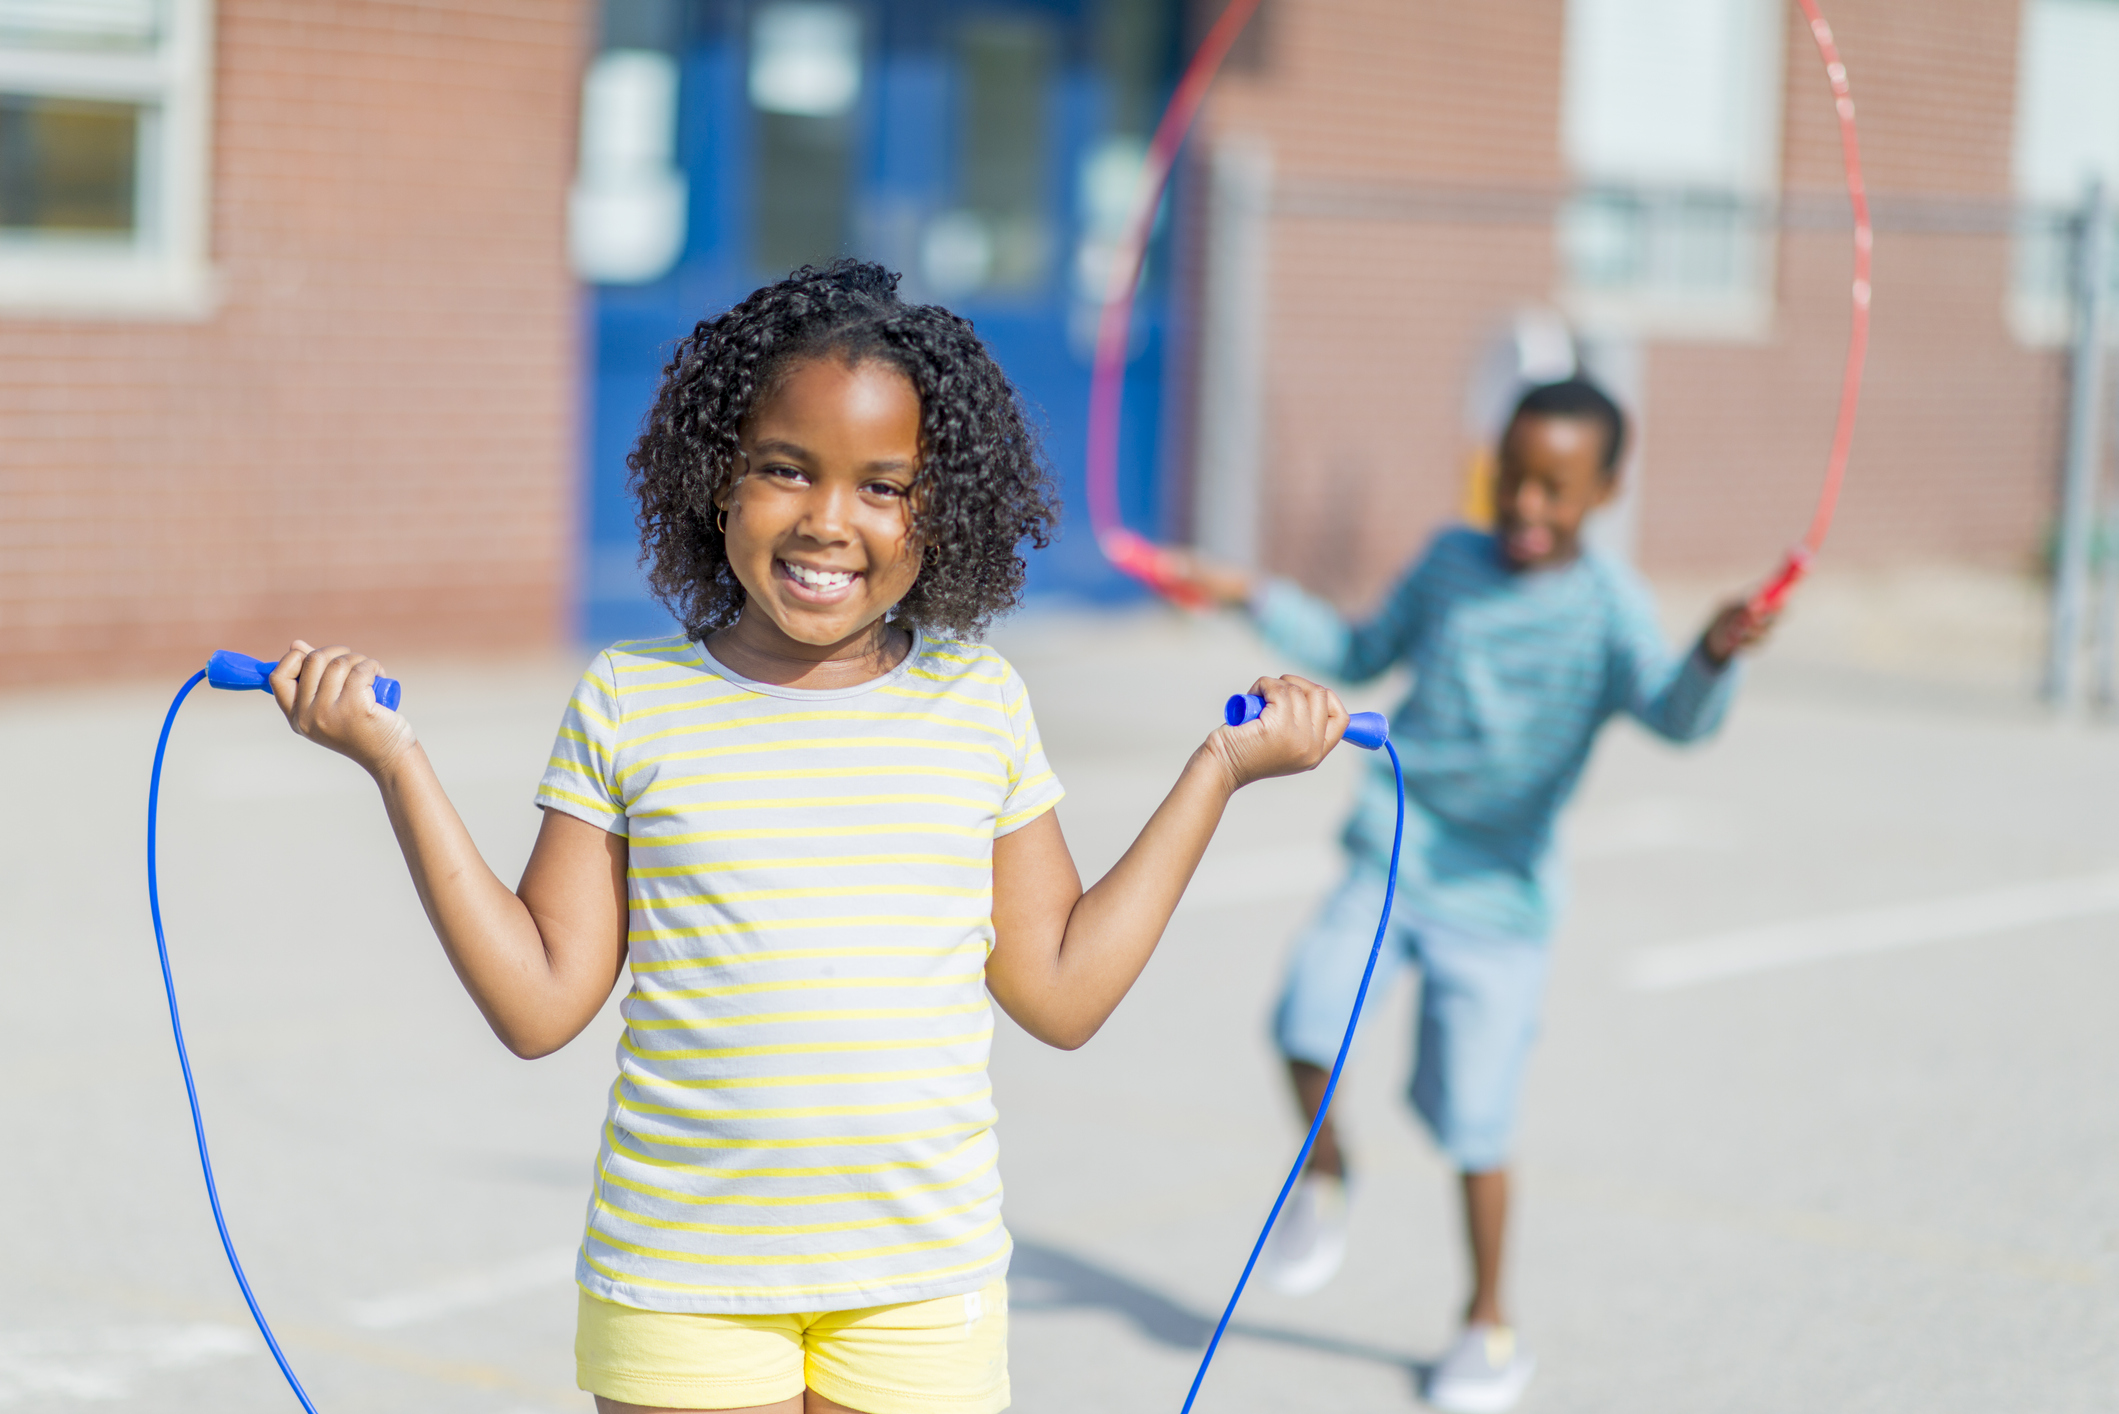 Image of kids using jump ropes